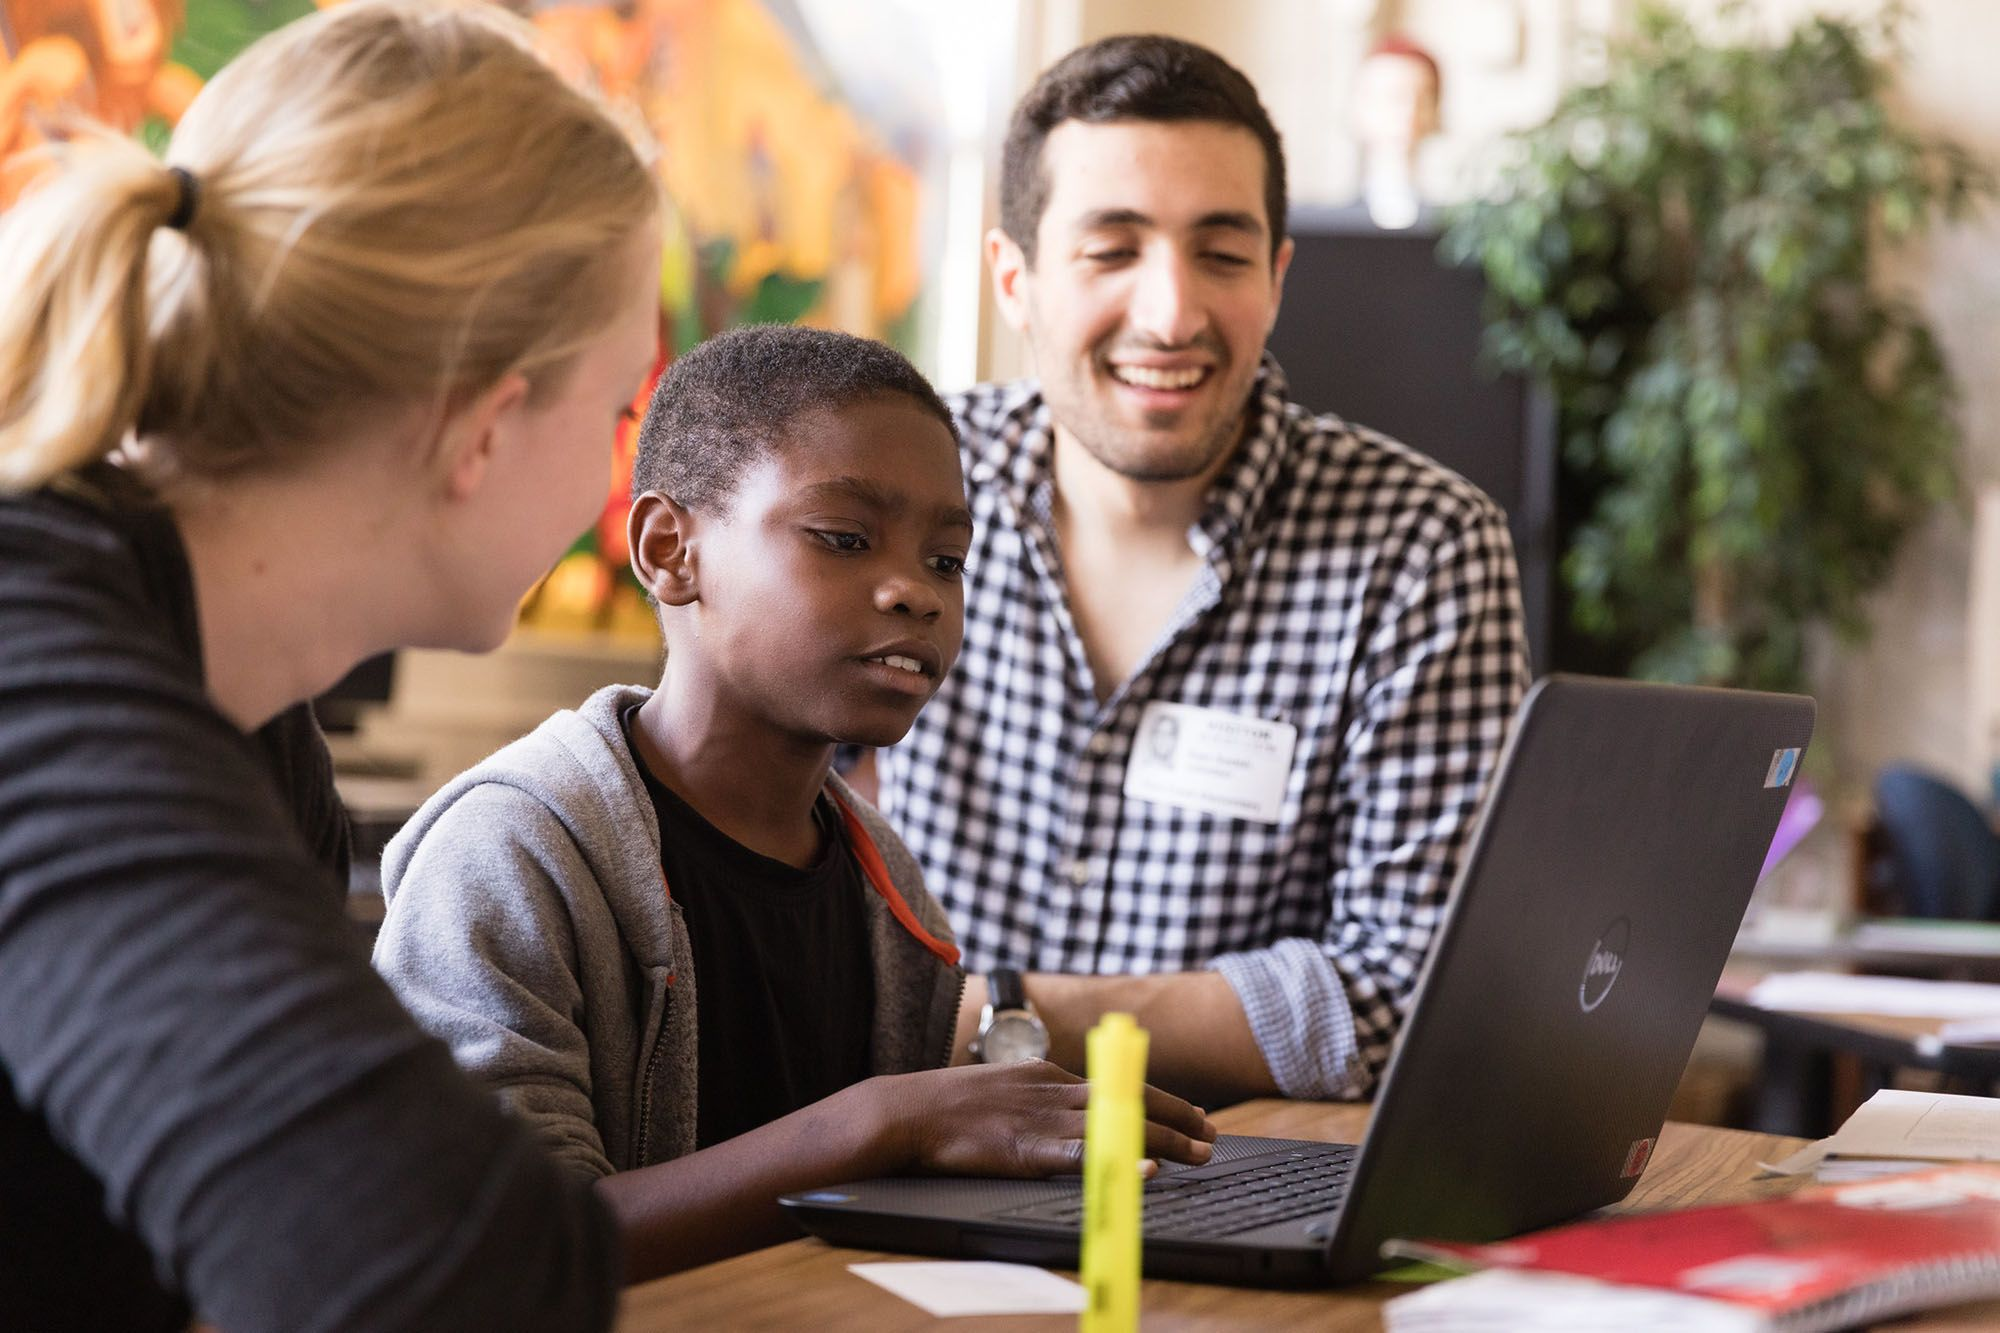 Sam Sadeh '18 teaches a child how to code as part of funding made possible by Google.